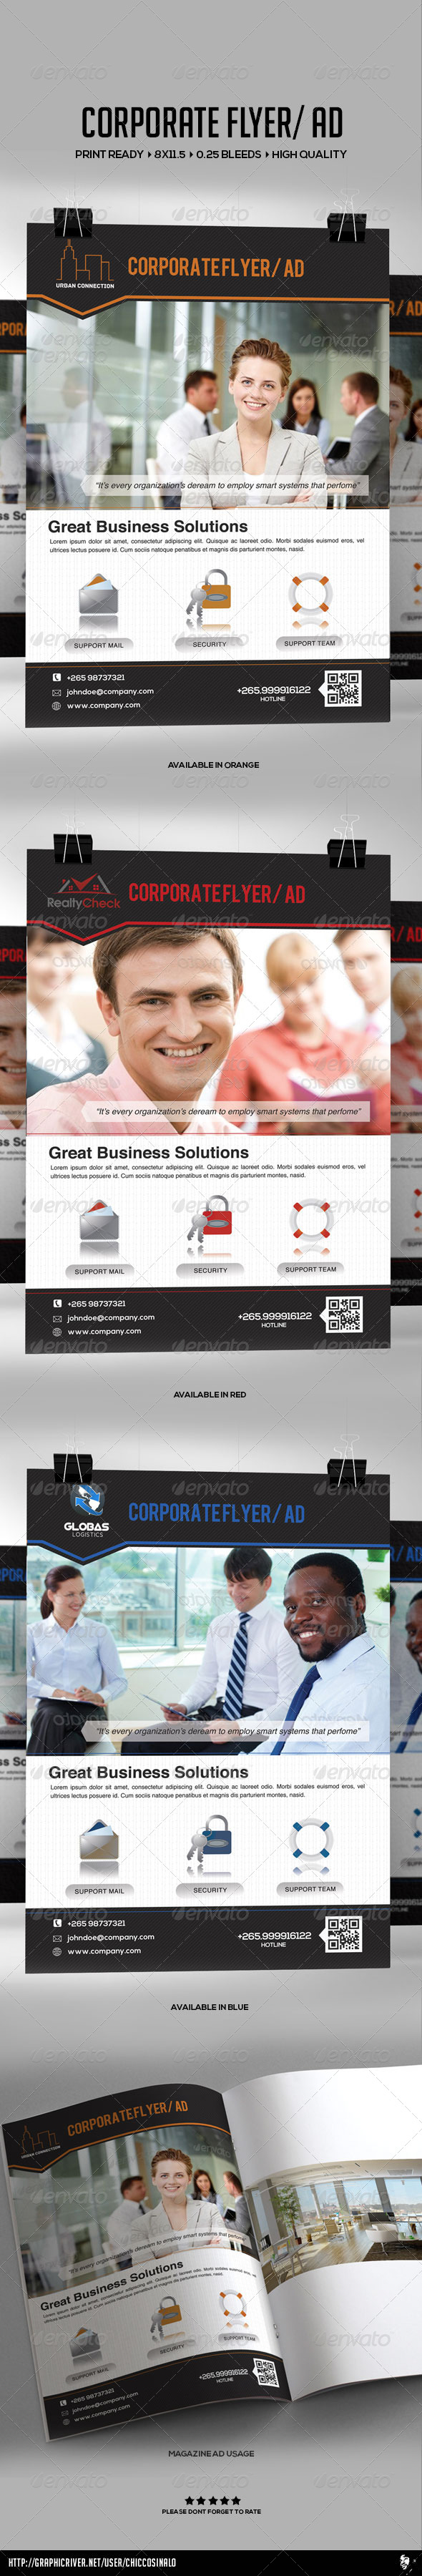 Corporate Flyer Ad Template - Corporate Flyers